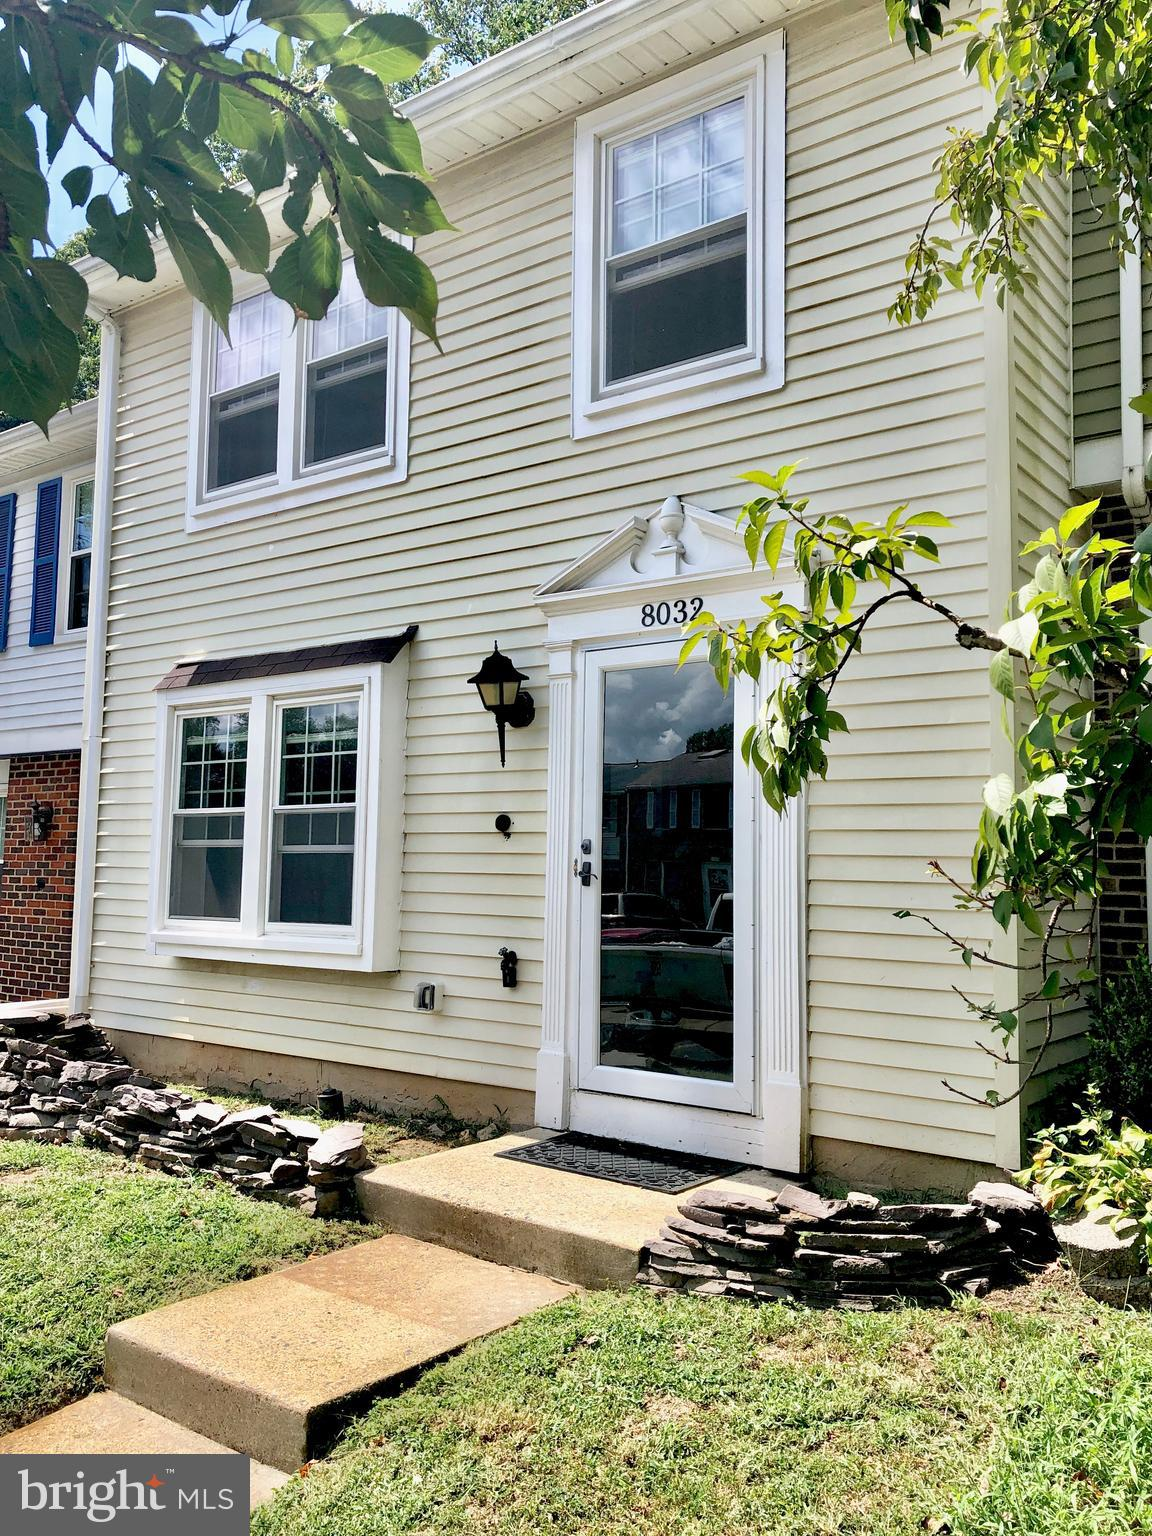 Beautiful, move-in-ready townhome in Newington Forest. This spacious 3 bed 2 bath home features a lovely updated kitchen with solid wood cabinets, granite counters, stainless appliances and under cabinet lighting.  Escape to the fully fenced back yard where you can enjoy grilling on the deck, relaxing by the stone fire-pit and best of all, entertain your friends and family around the custom Tiki-Bar.  Updated bathrooms, fixtures, and 3 year old vinyl windows.  HVAC and water heater also updated. Carpet and paint less than 3 years old.  This home is a must see and priced to sell quickly!